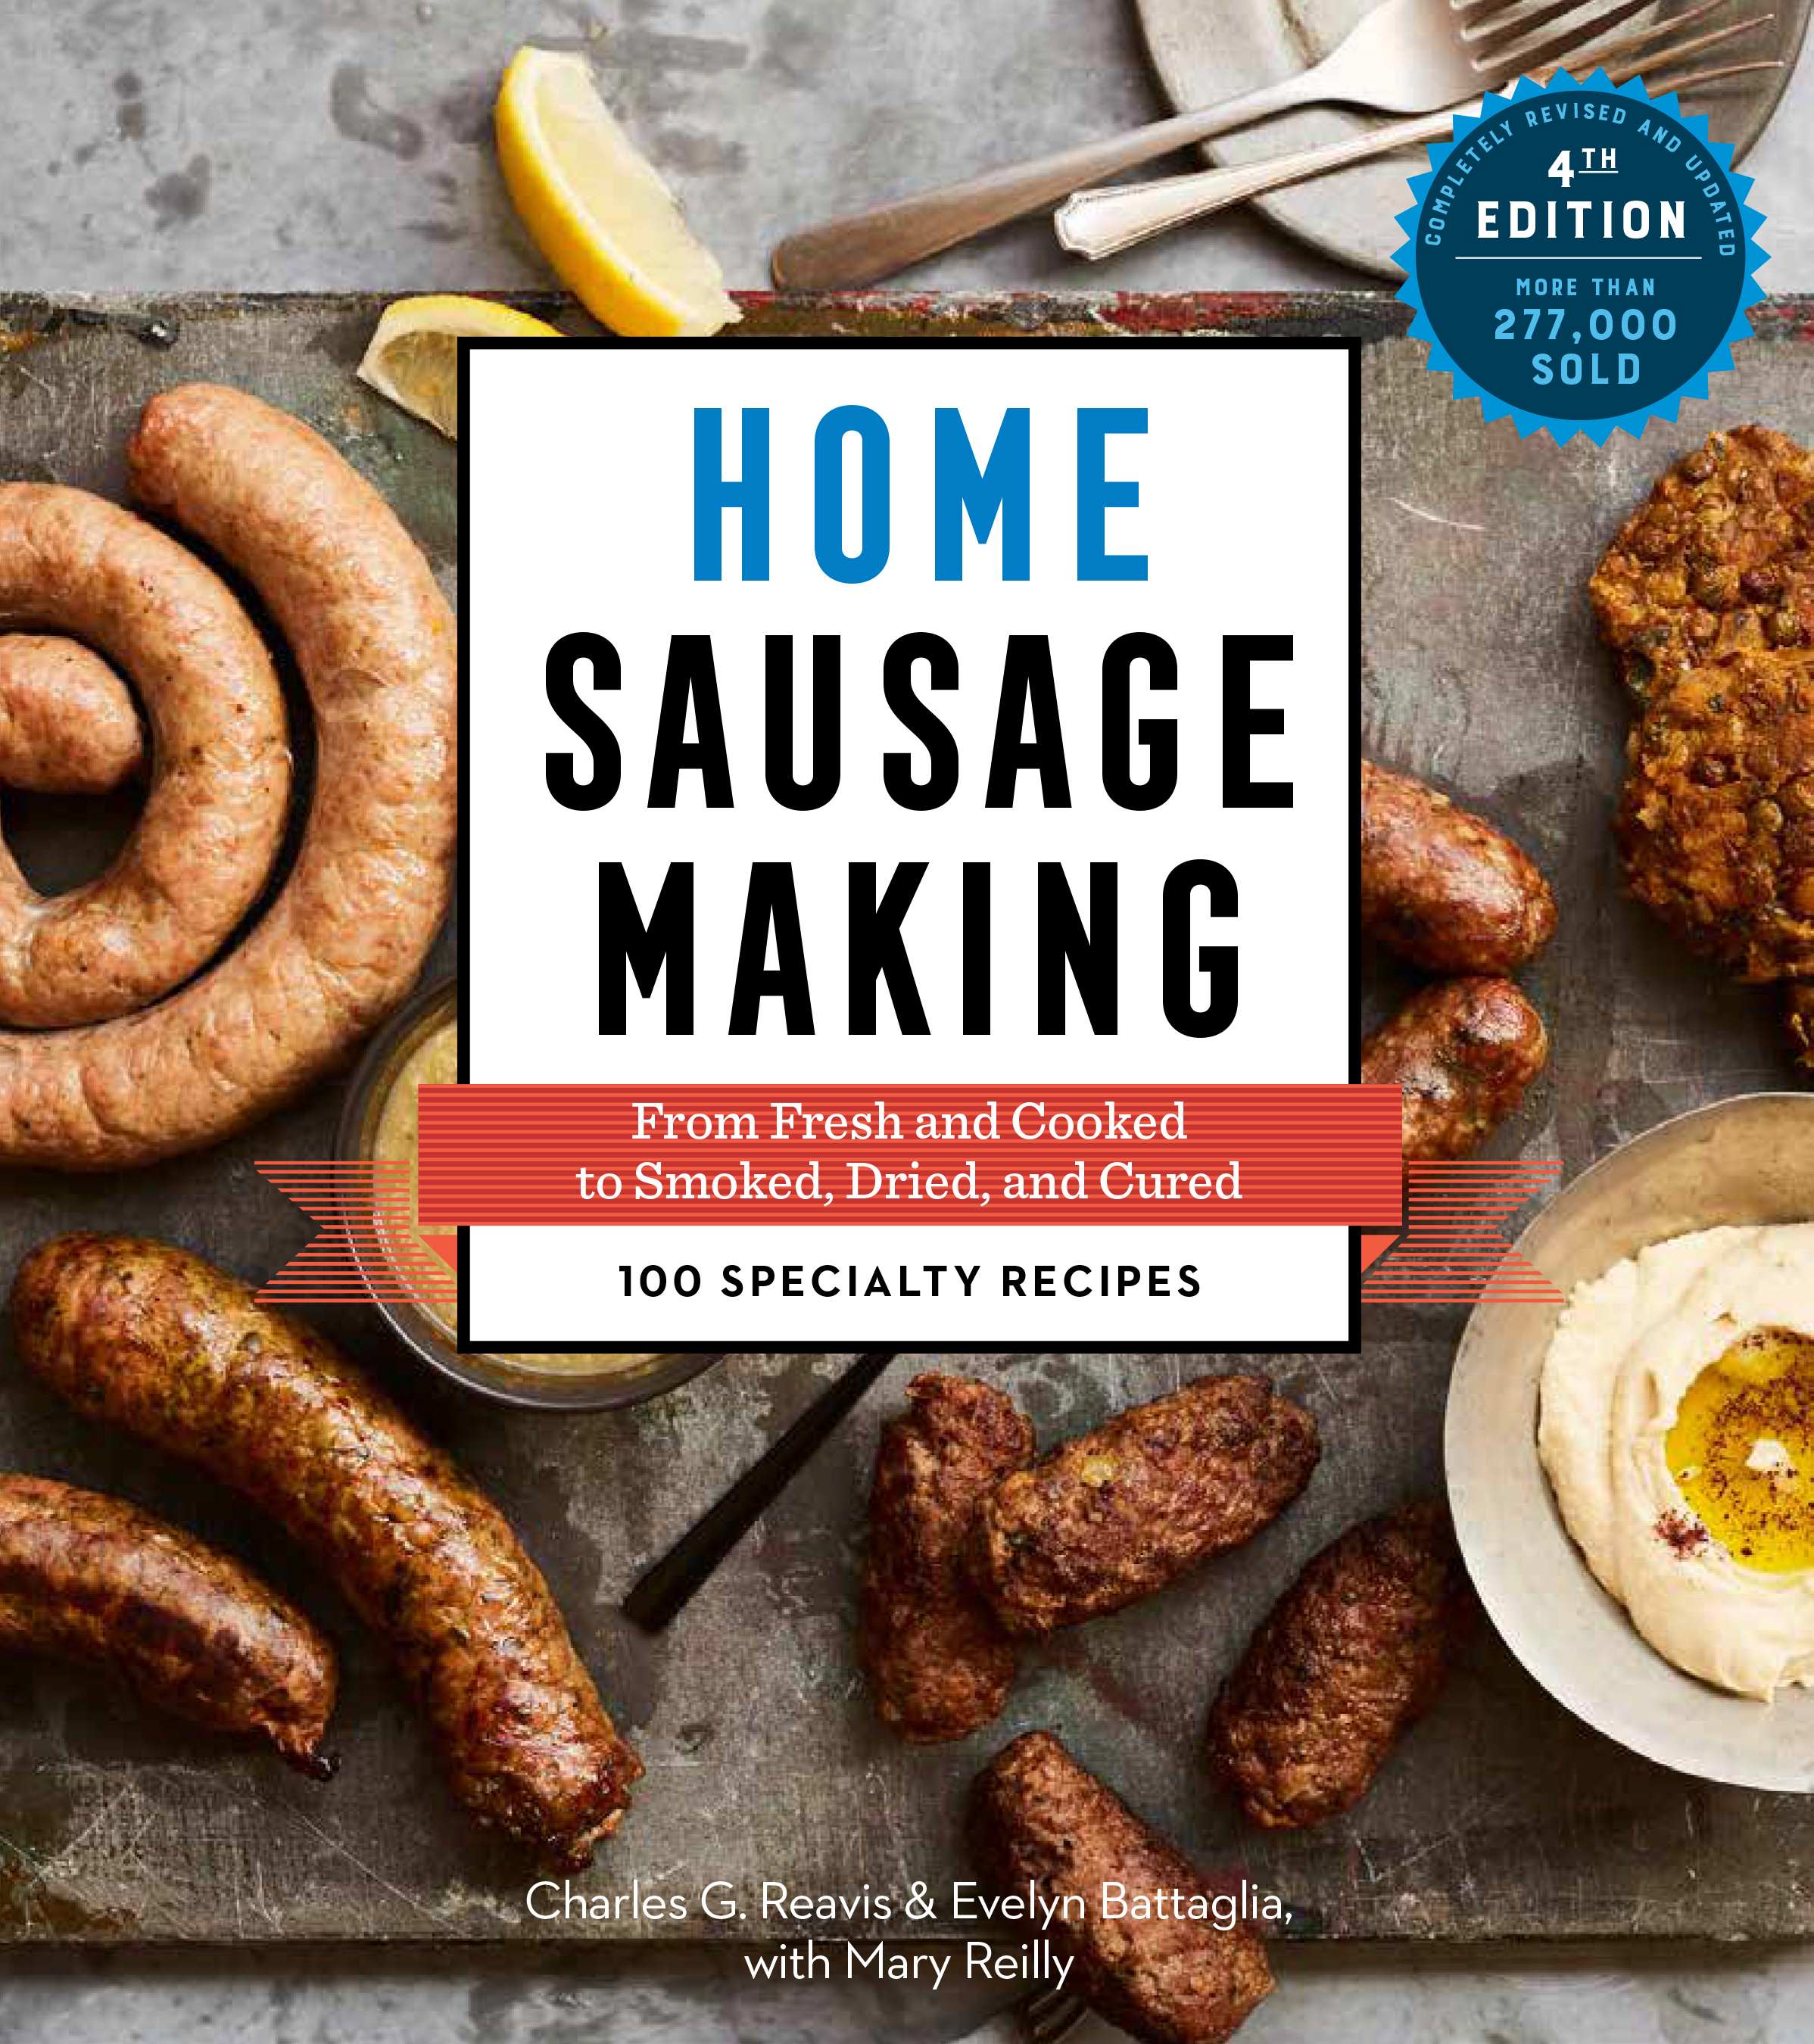 Home Sausage Making, 4th Edition From Fresh and Cooked to Smoked, Dried, and Cured: 100 Specialty Recipes - Charles G. Reavis